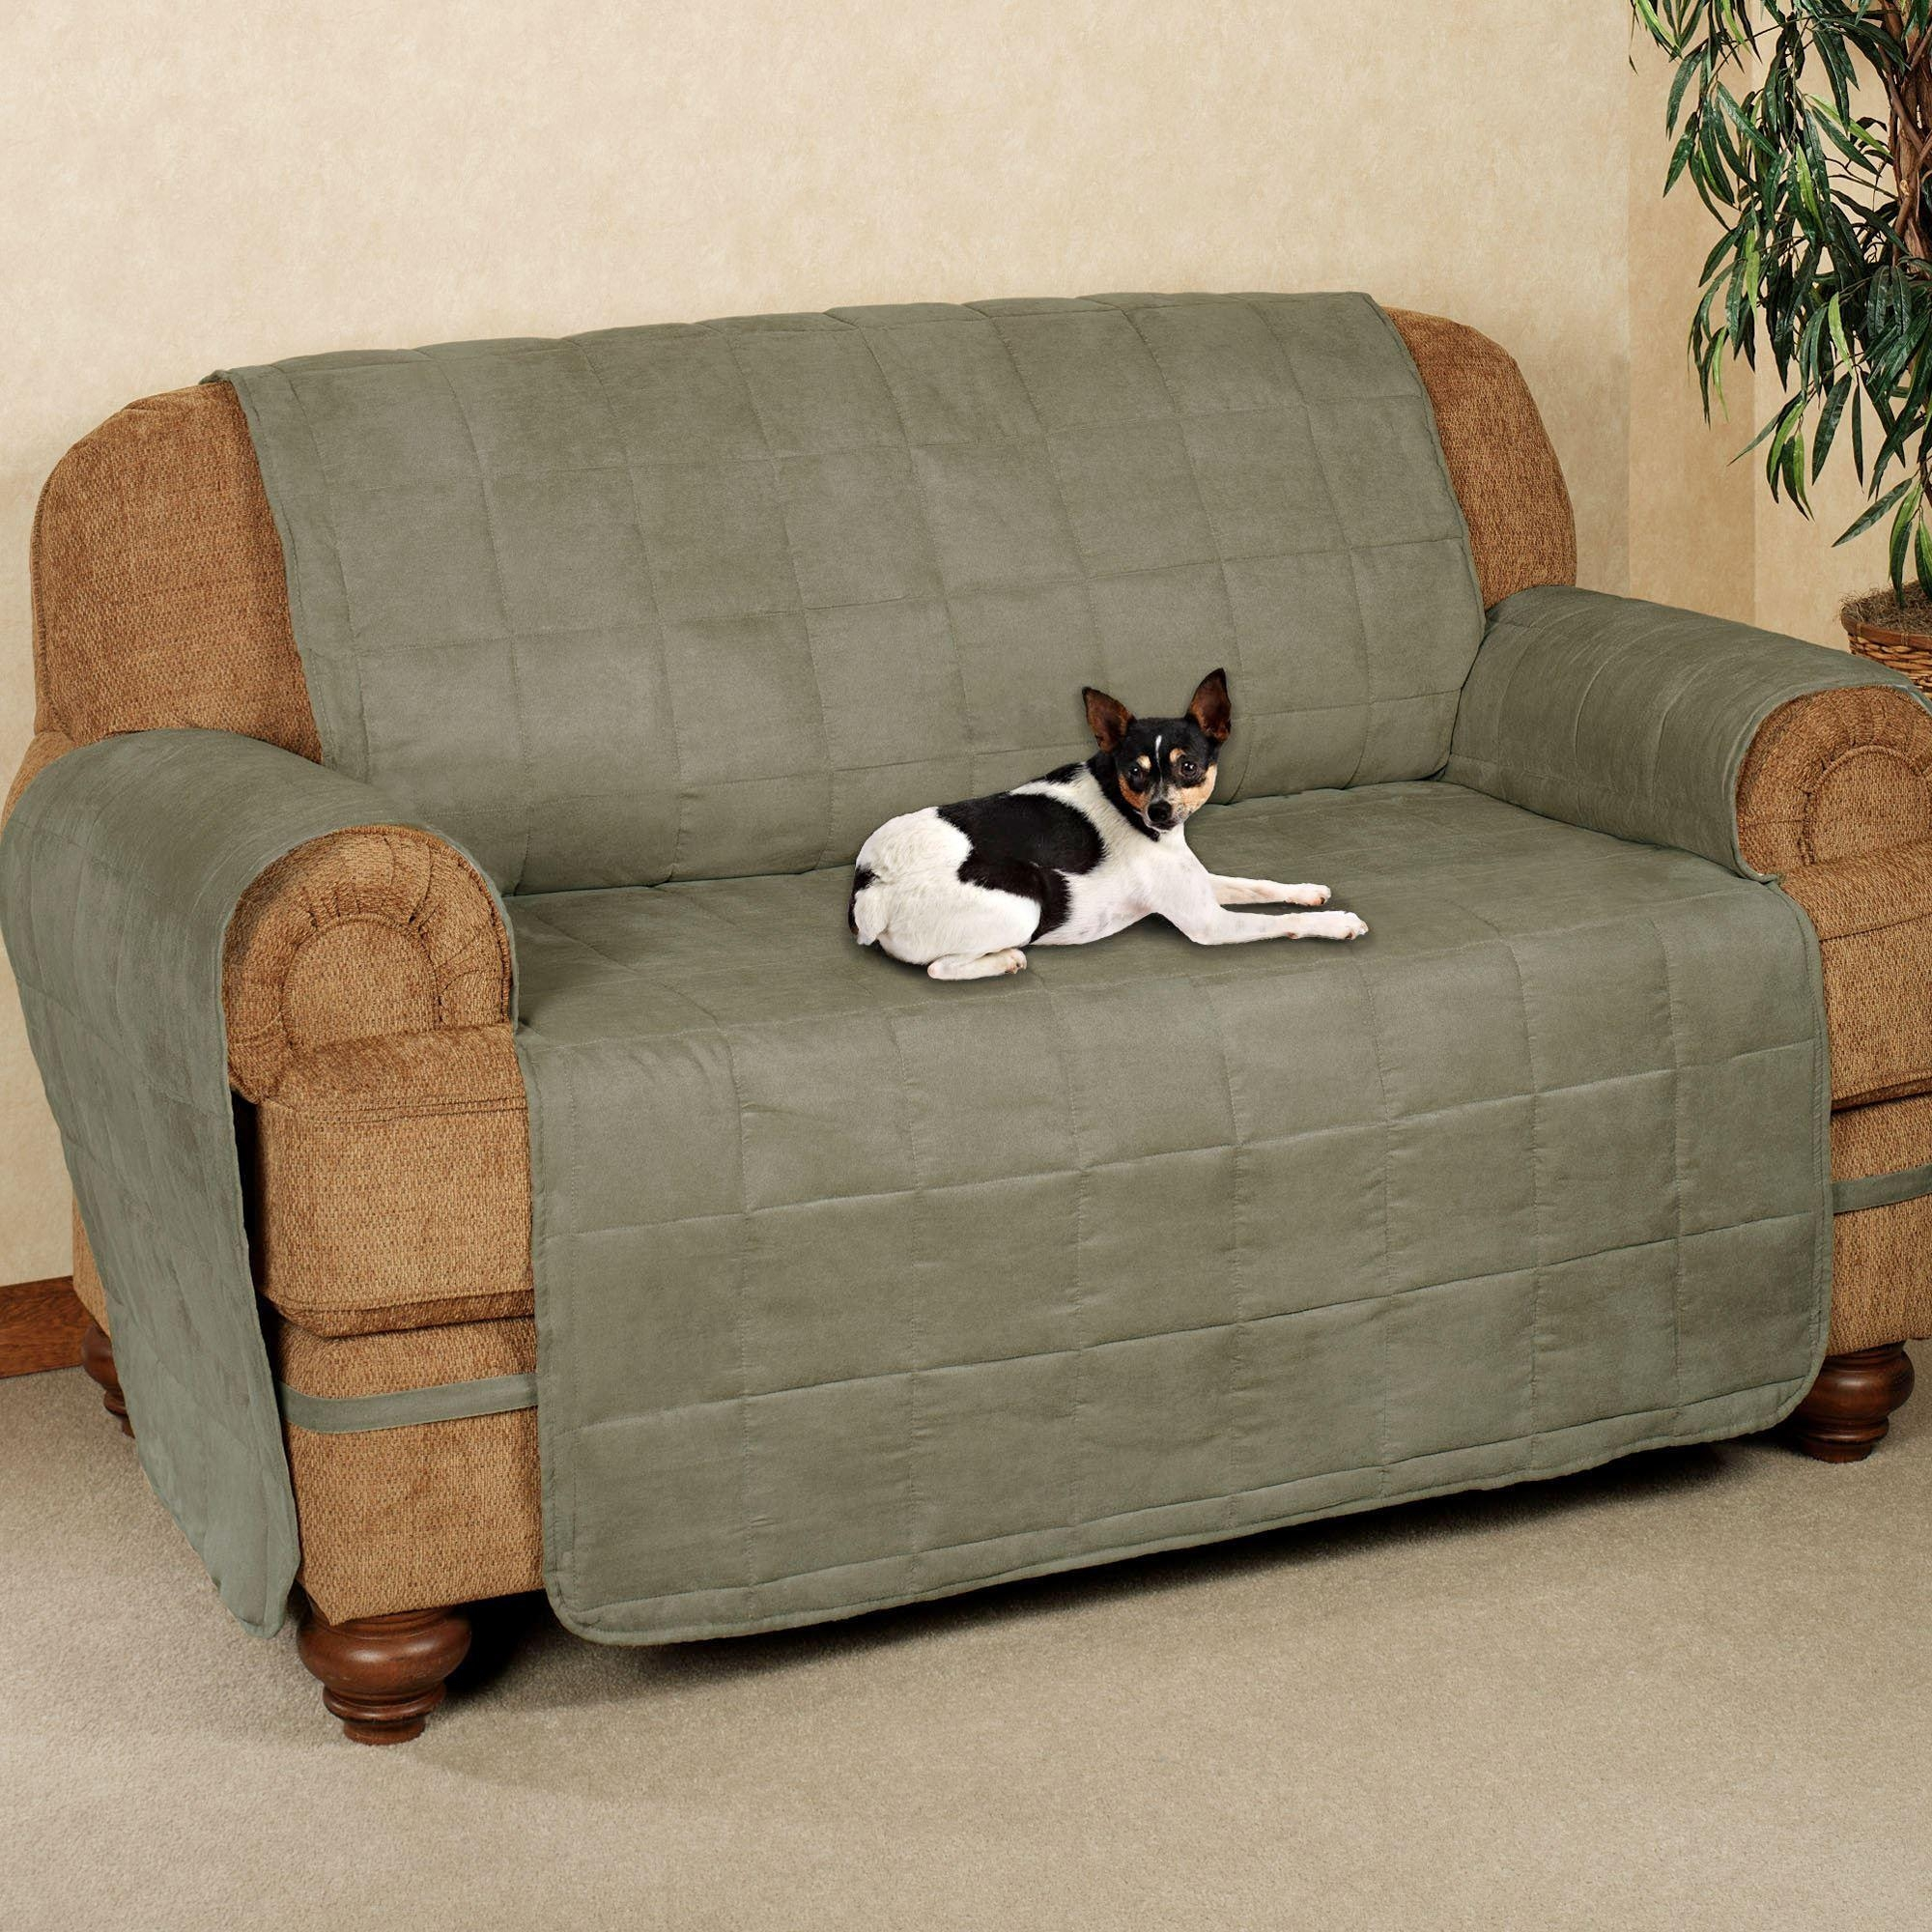 20 Collection Of Pet Proof Sofa Covers Sofa Ideas